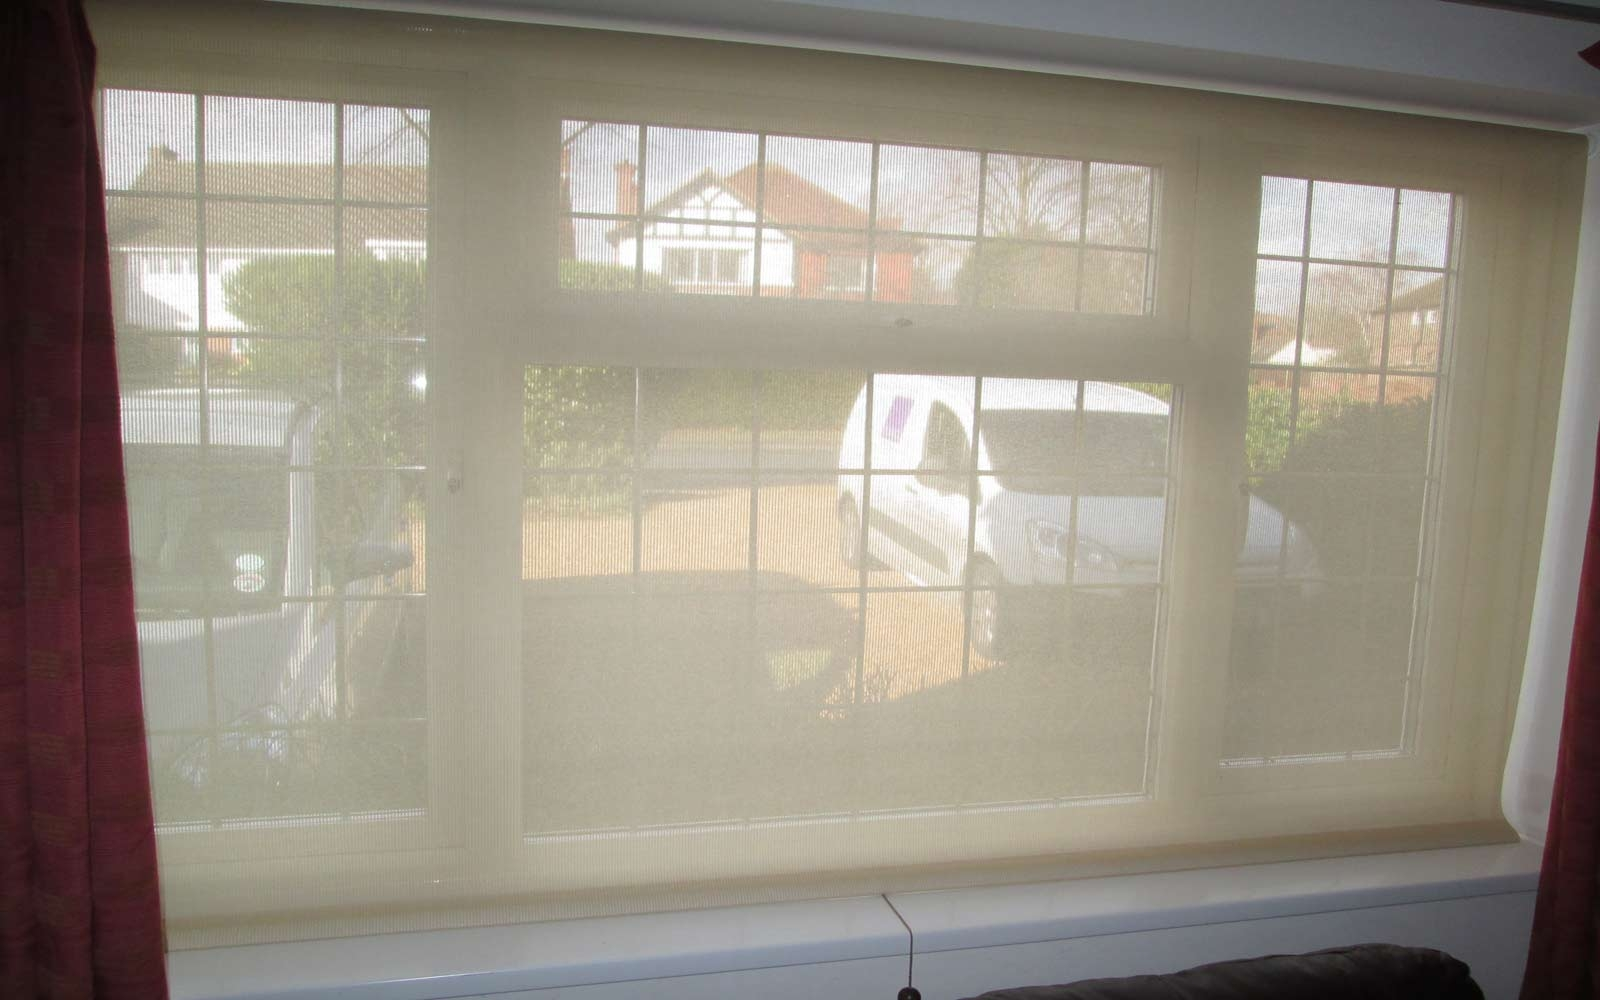 Voile Roller Blind Surrey Blinds Shutters Intended For Voile Roman Blinds (Image 12 of 15)